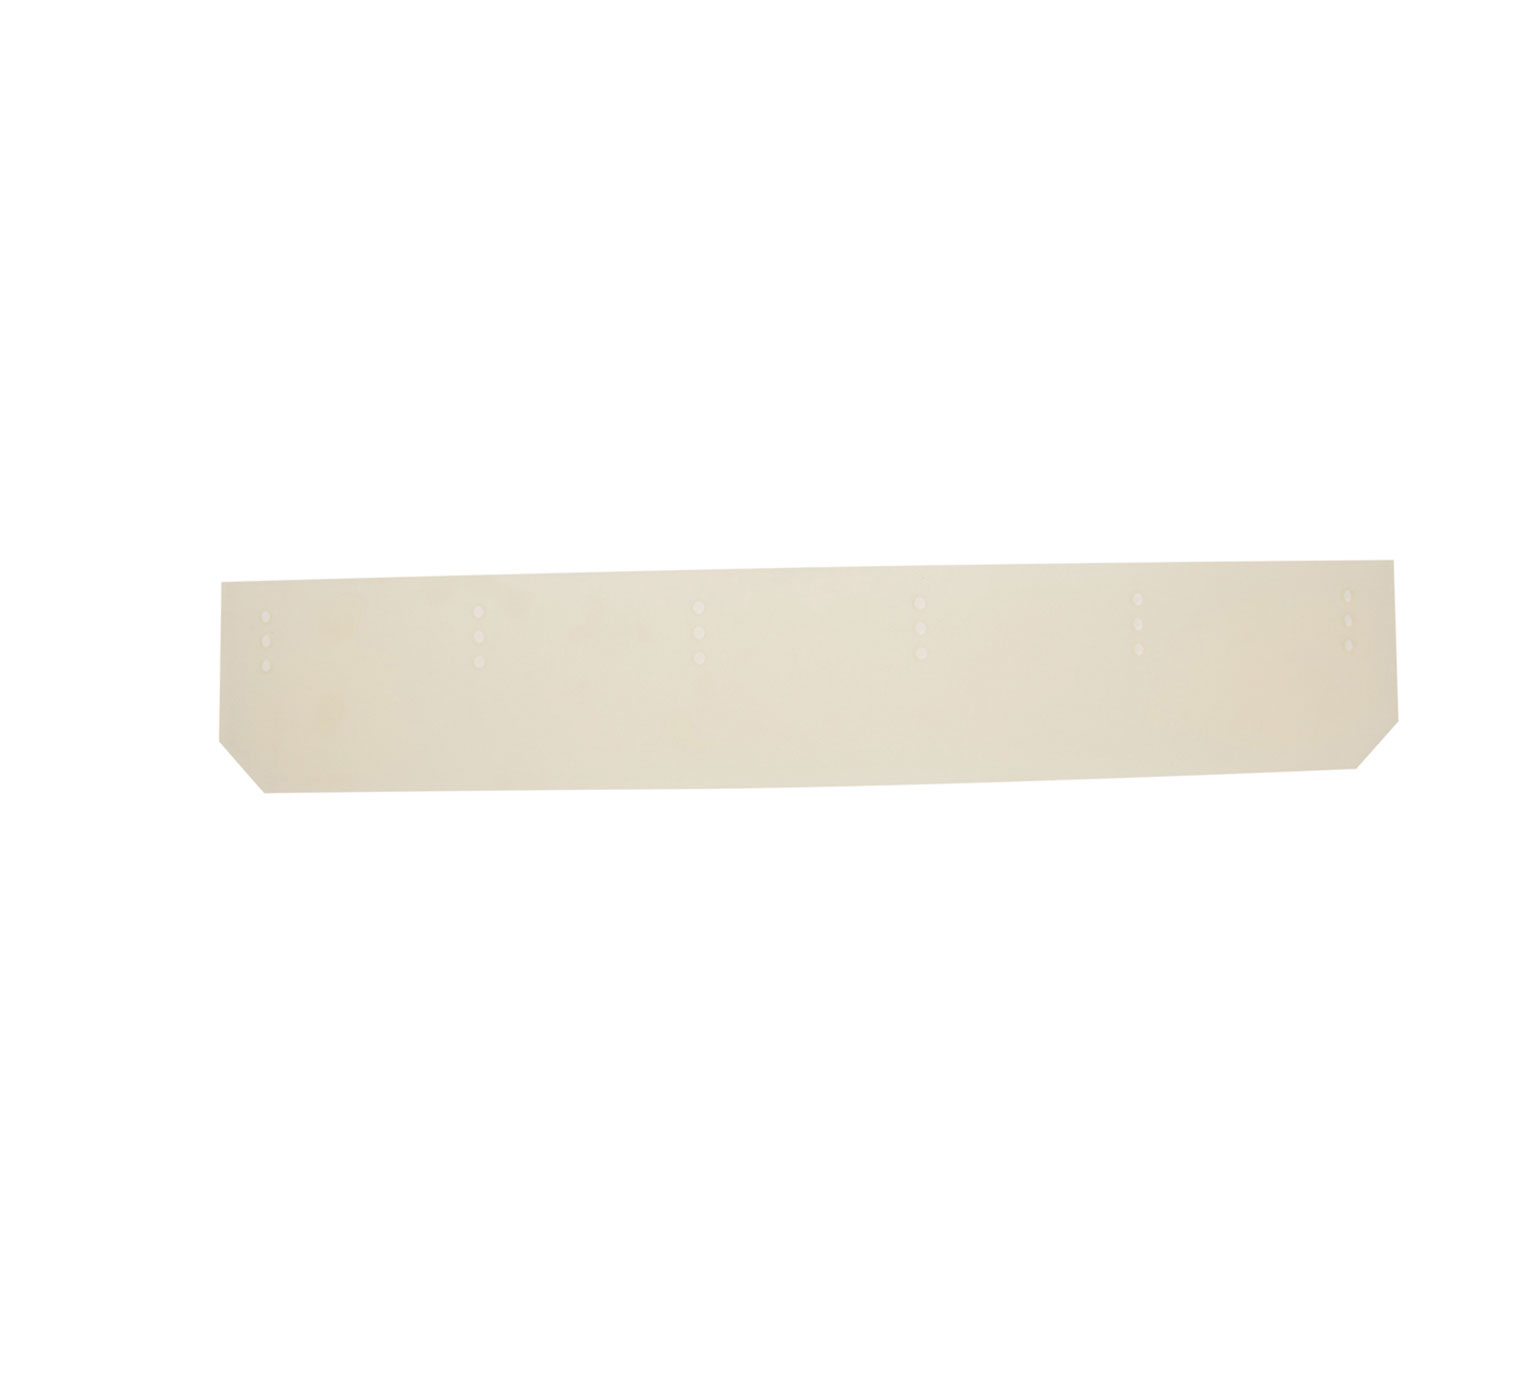 1059092 Polyurethane Side Squeegee – 23.8 in alt 1